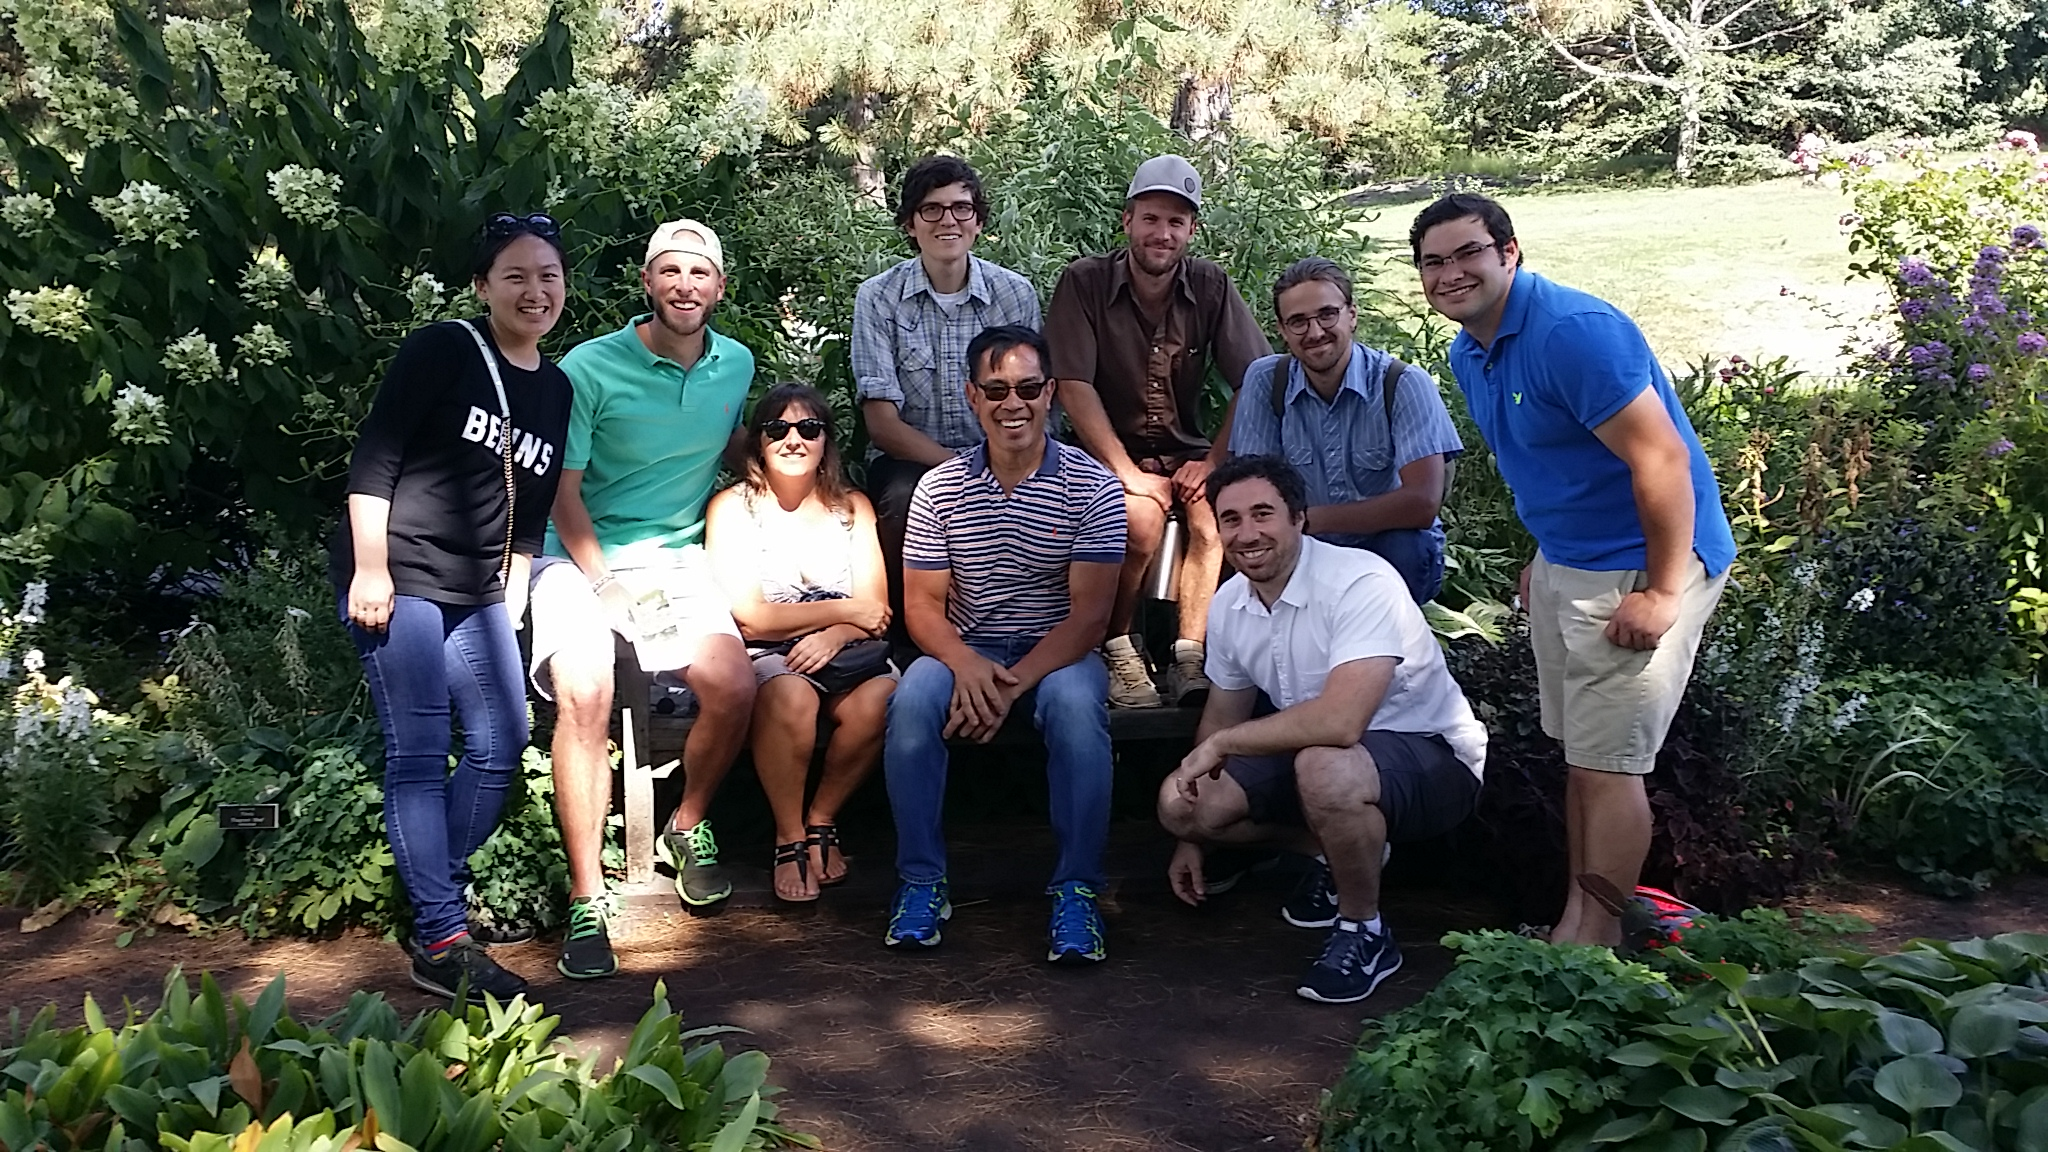 ECLLD 2015 NYBG Group.jpg